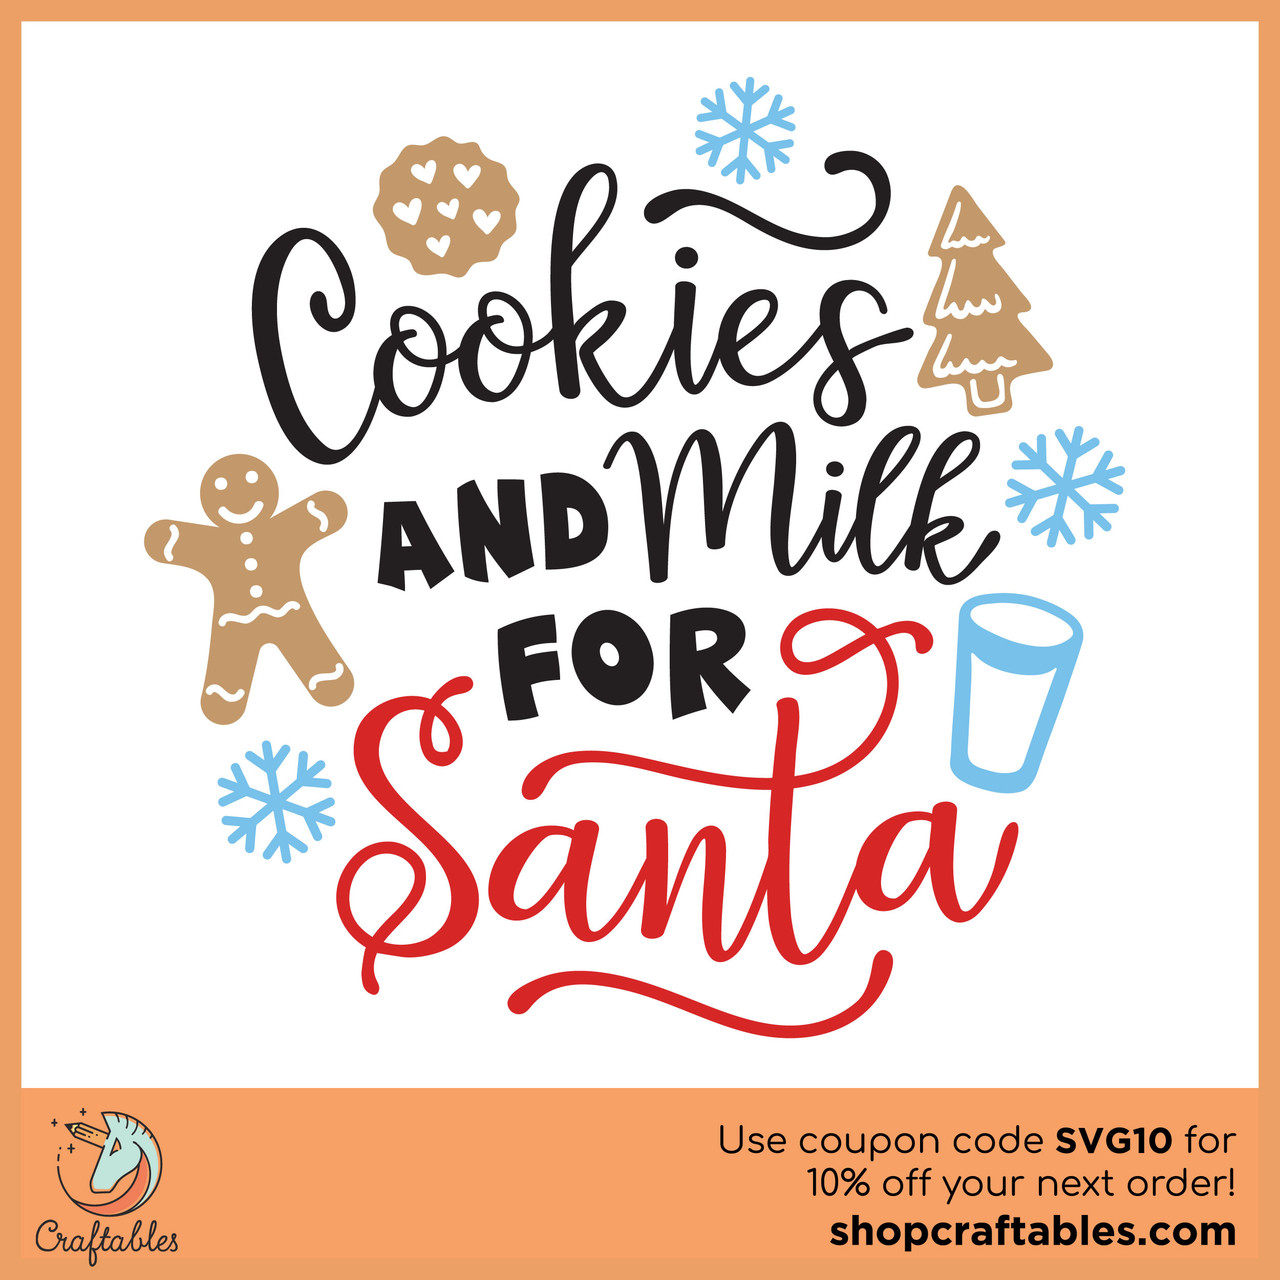 Silhouette File Quote Cut File Cricut File Vinyl Cut File Cookies For Santa Svg Christmas Cut File Merry Christmas Svg Download Home Hobby Craft Supplies Tools